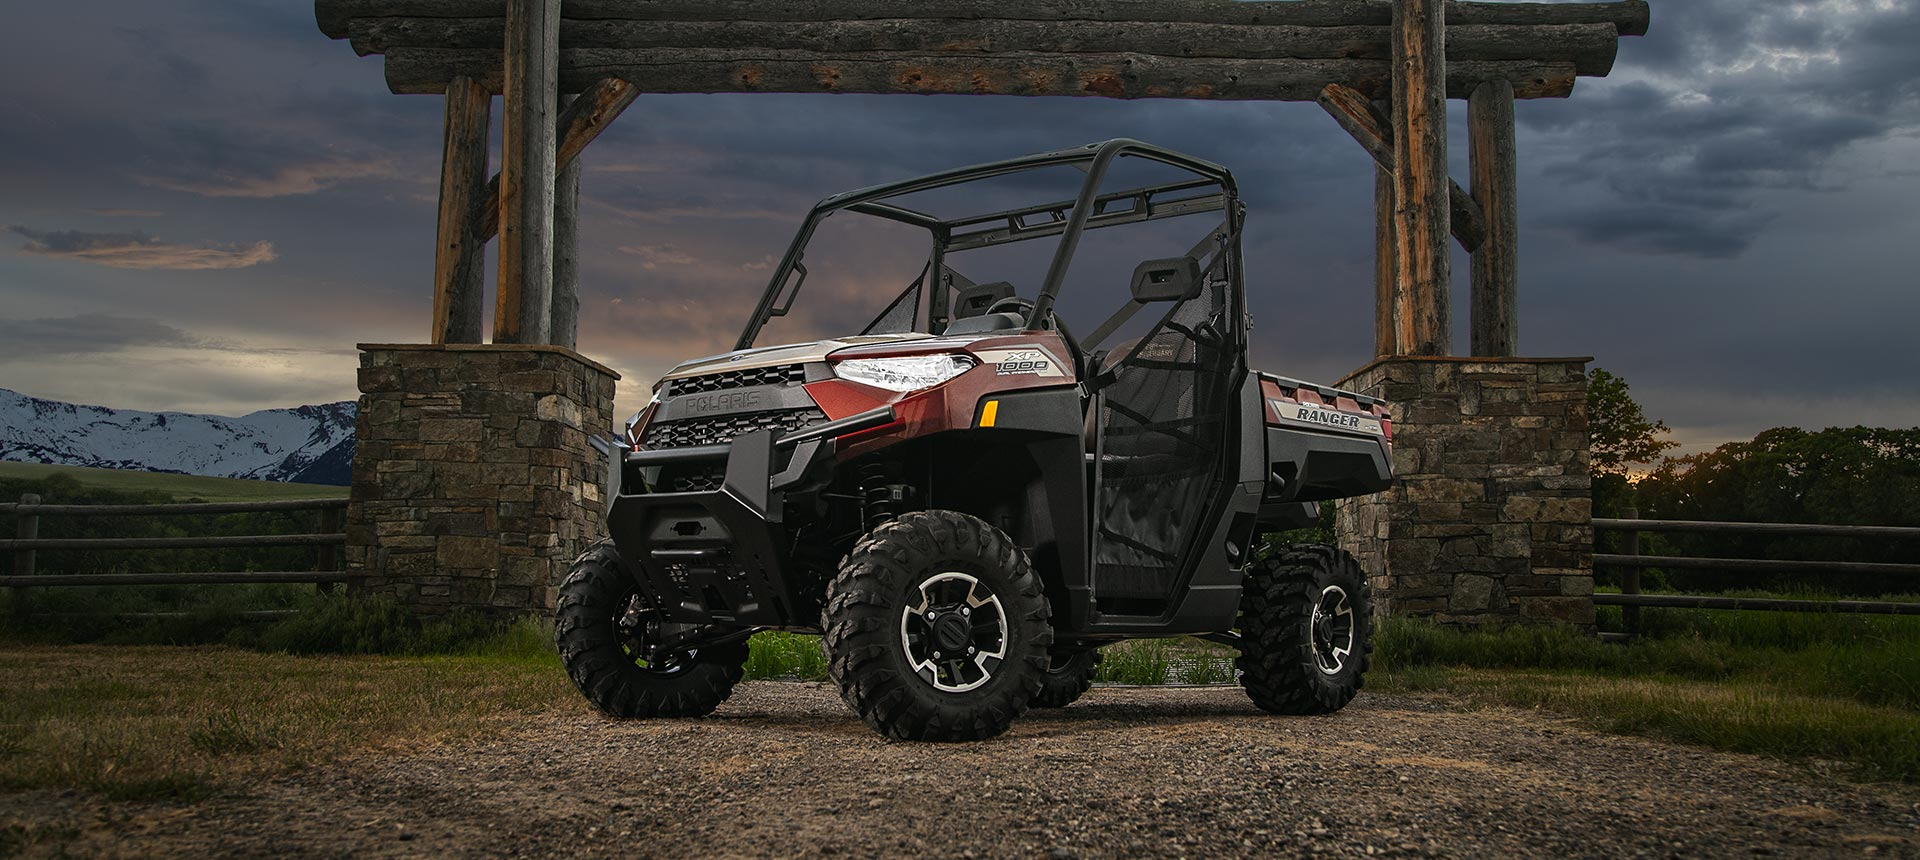 2019 Polaris Ranger XP 1000 EPS in Tyler, Texas - Photo 8